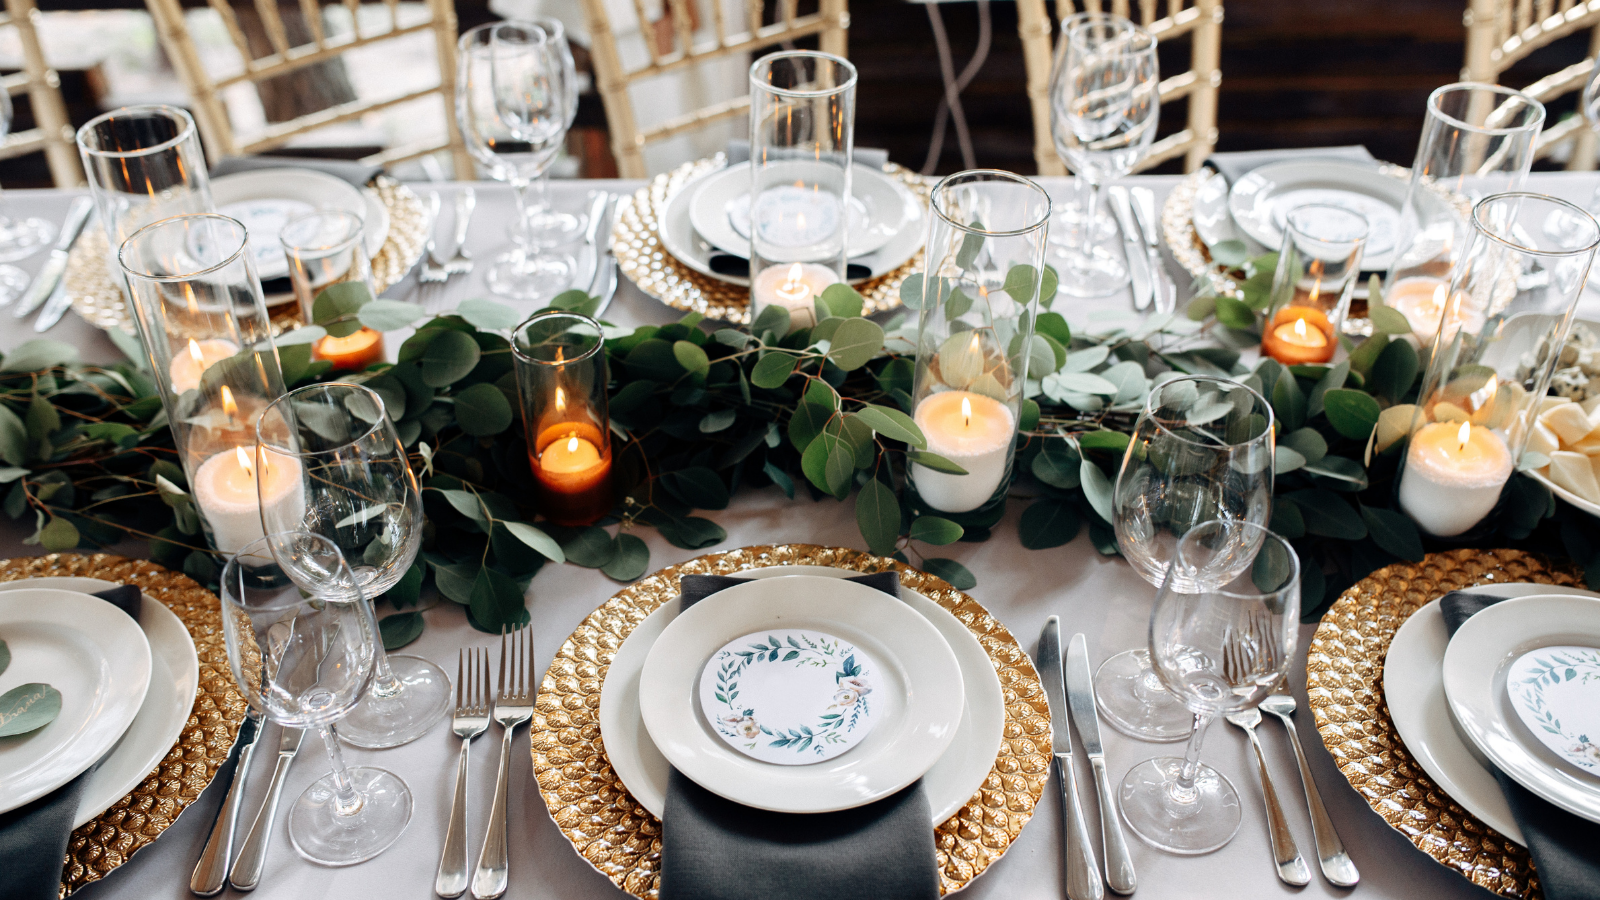 wedding reception setup with china, silverware, and centerpieces